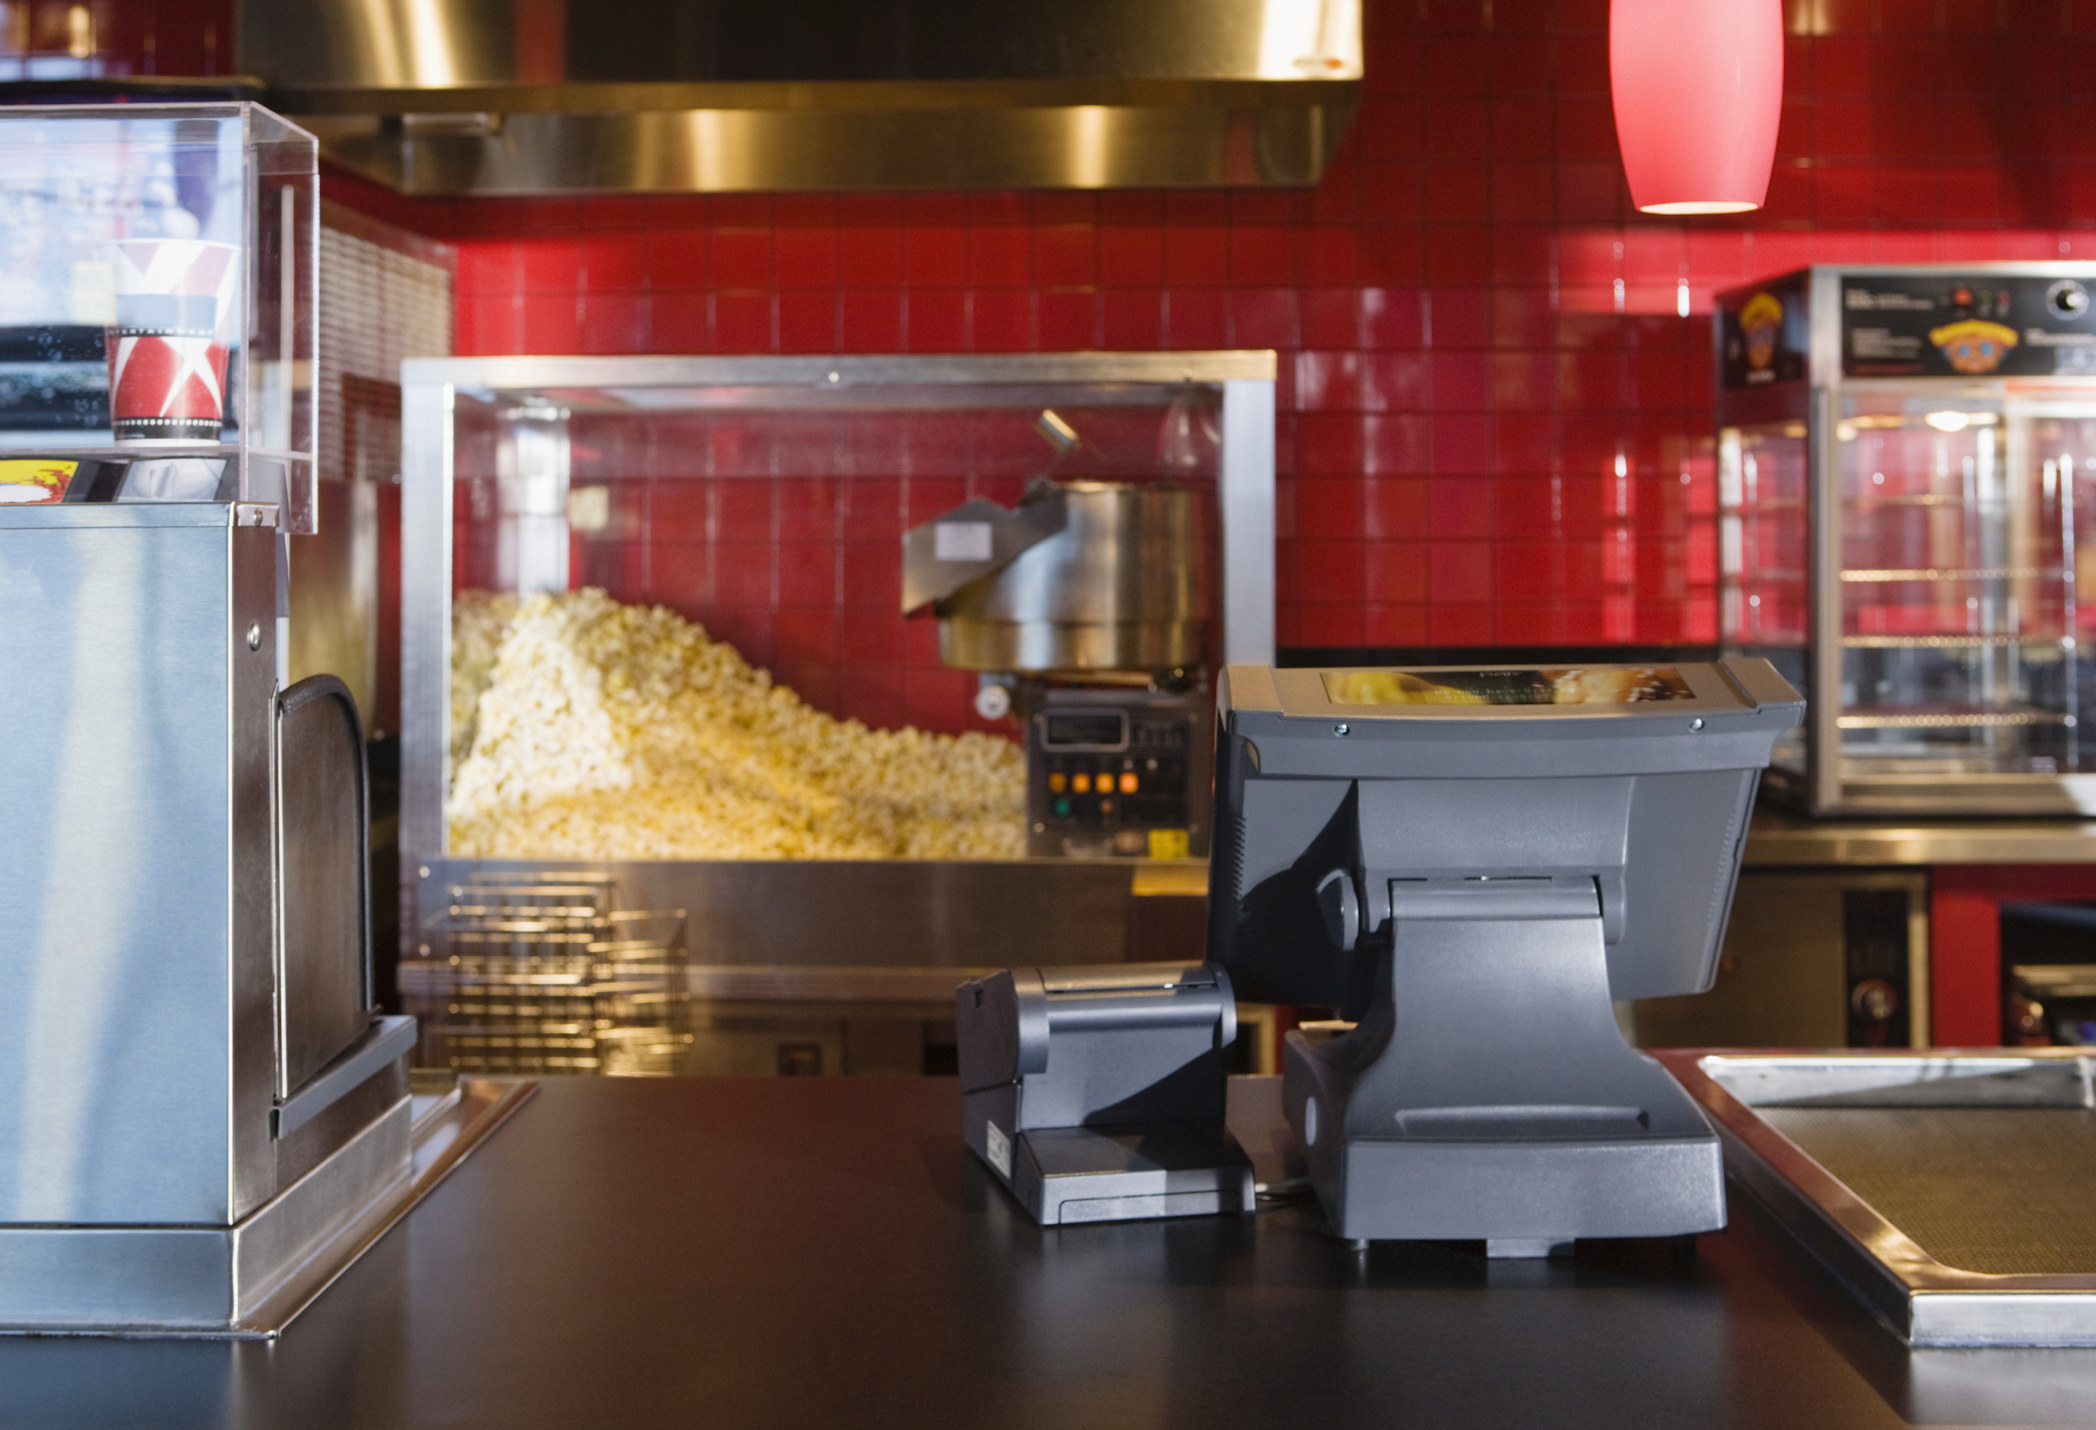 A concession stand at a movie theater, with a popcorn machine and a drink machine